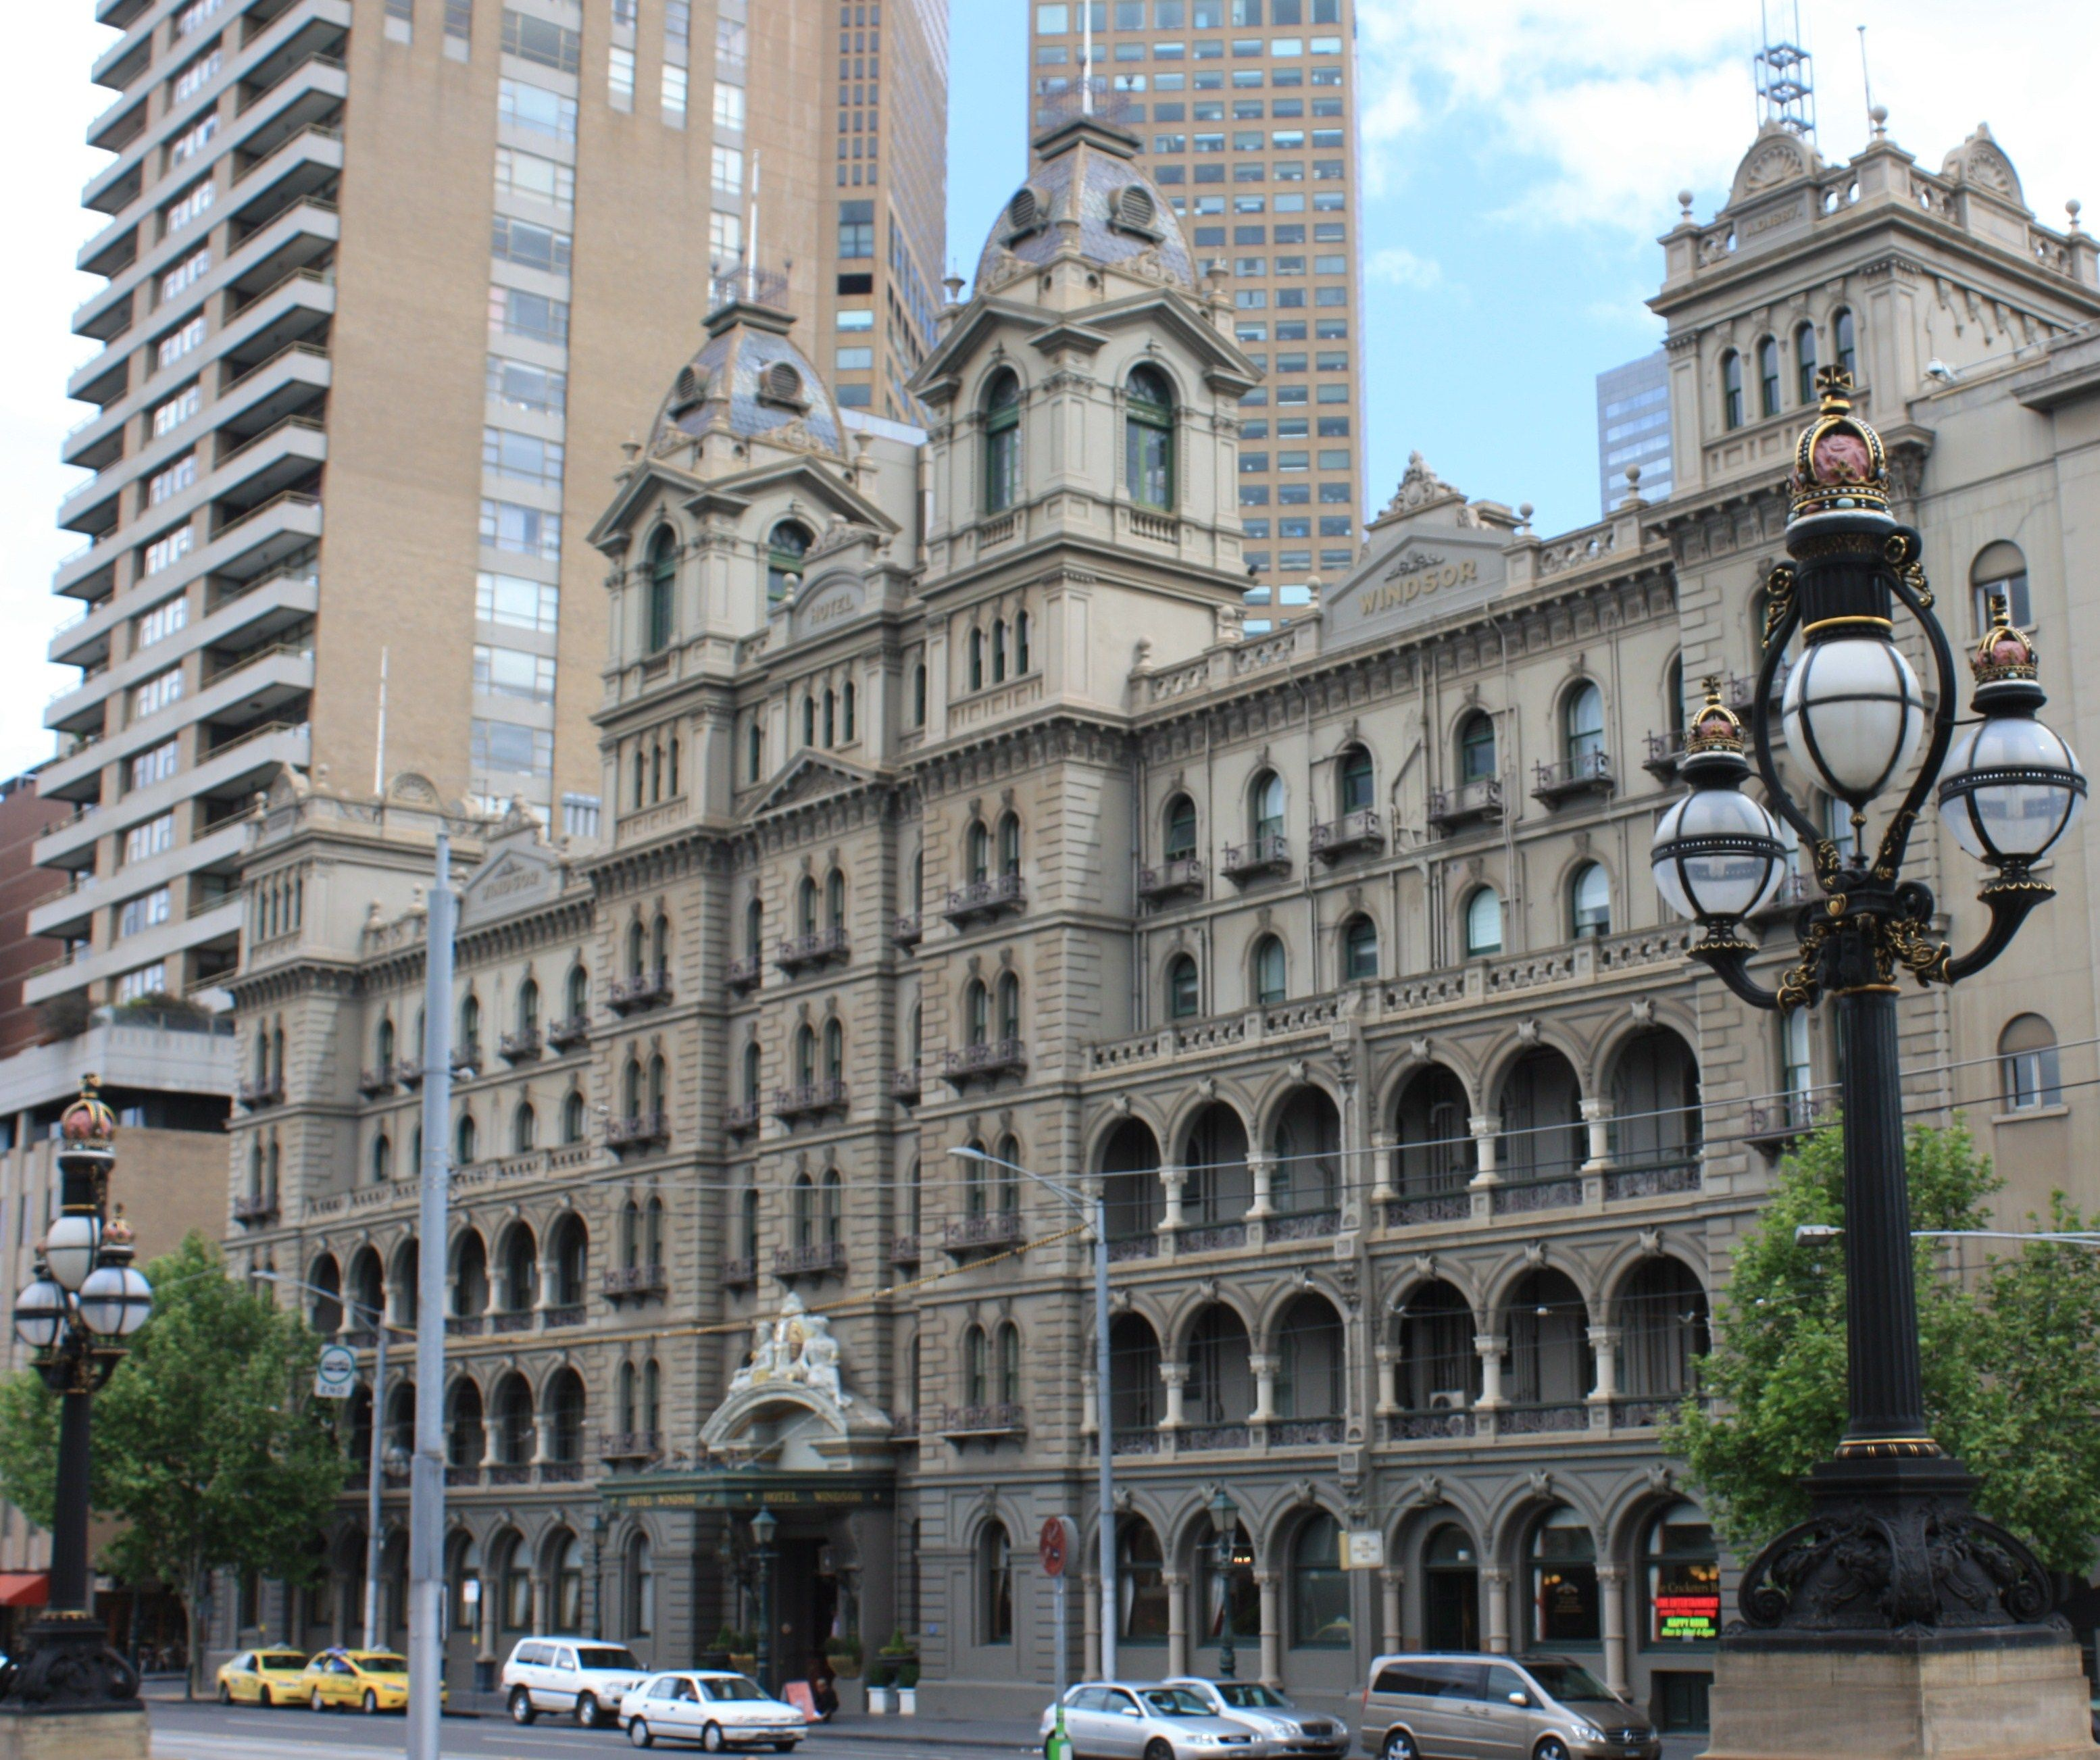 The Hotel Windsor Melbourne Australia Victorian Architecture Wikipedia Free Encyclopedia